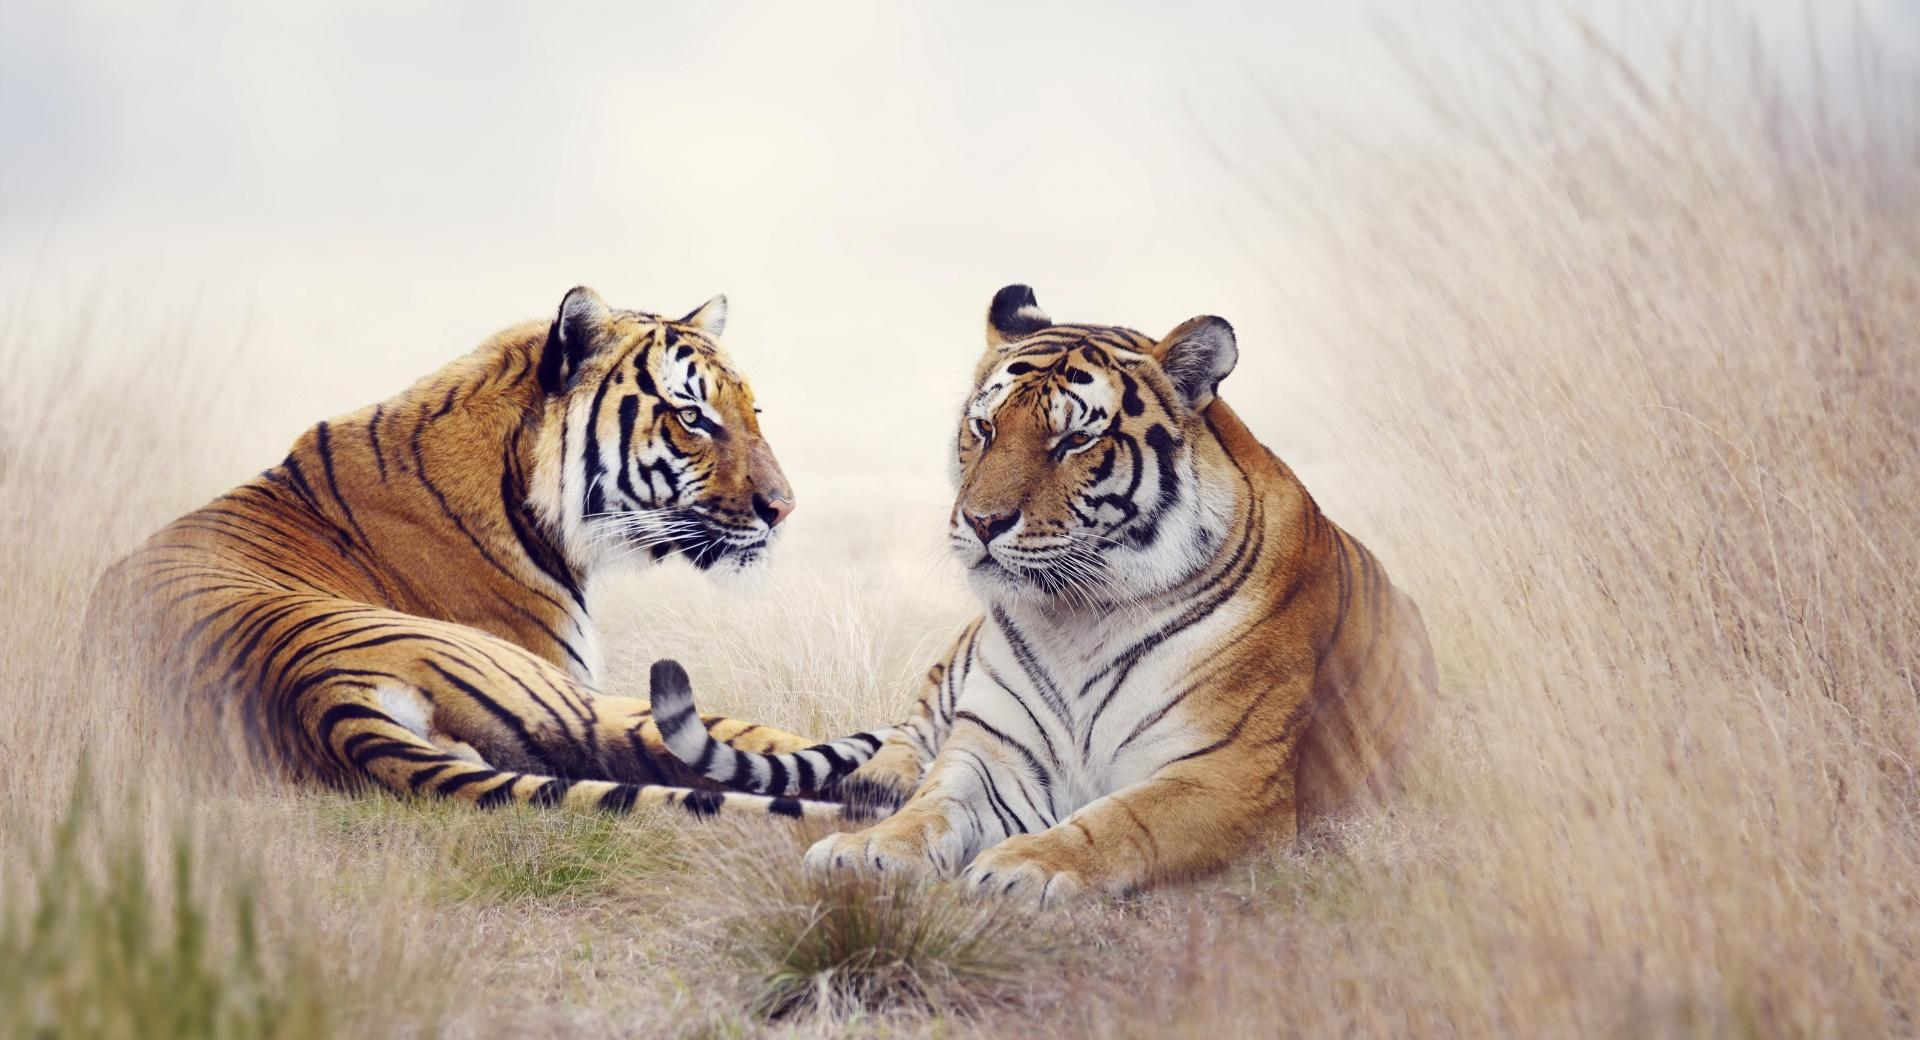 Tiger Pair wallpapers HD quality